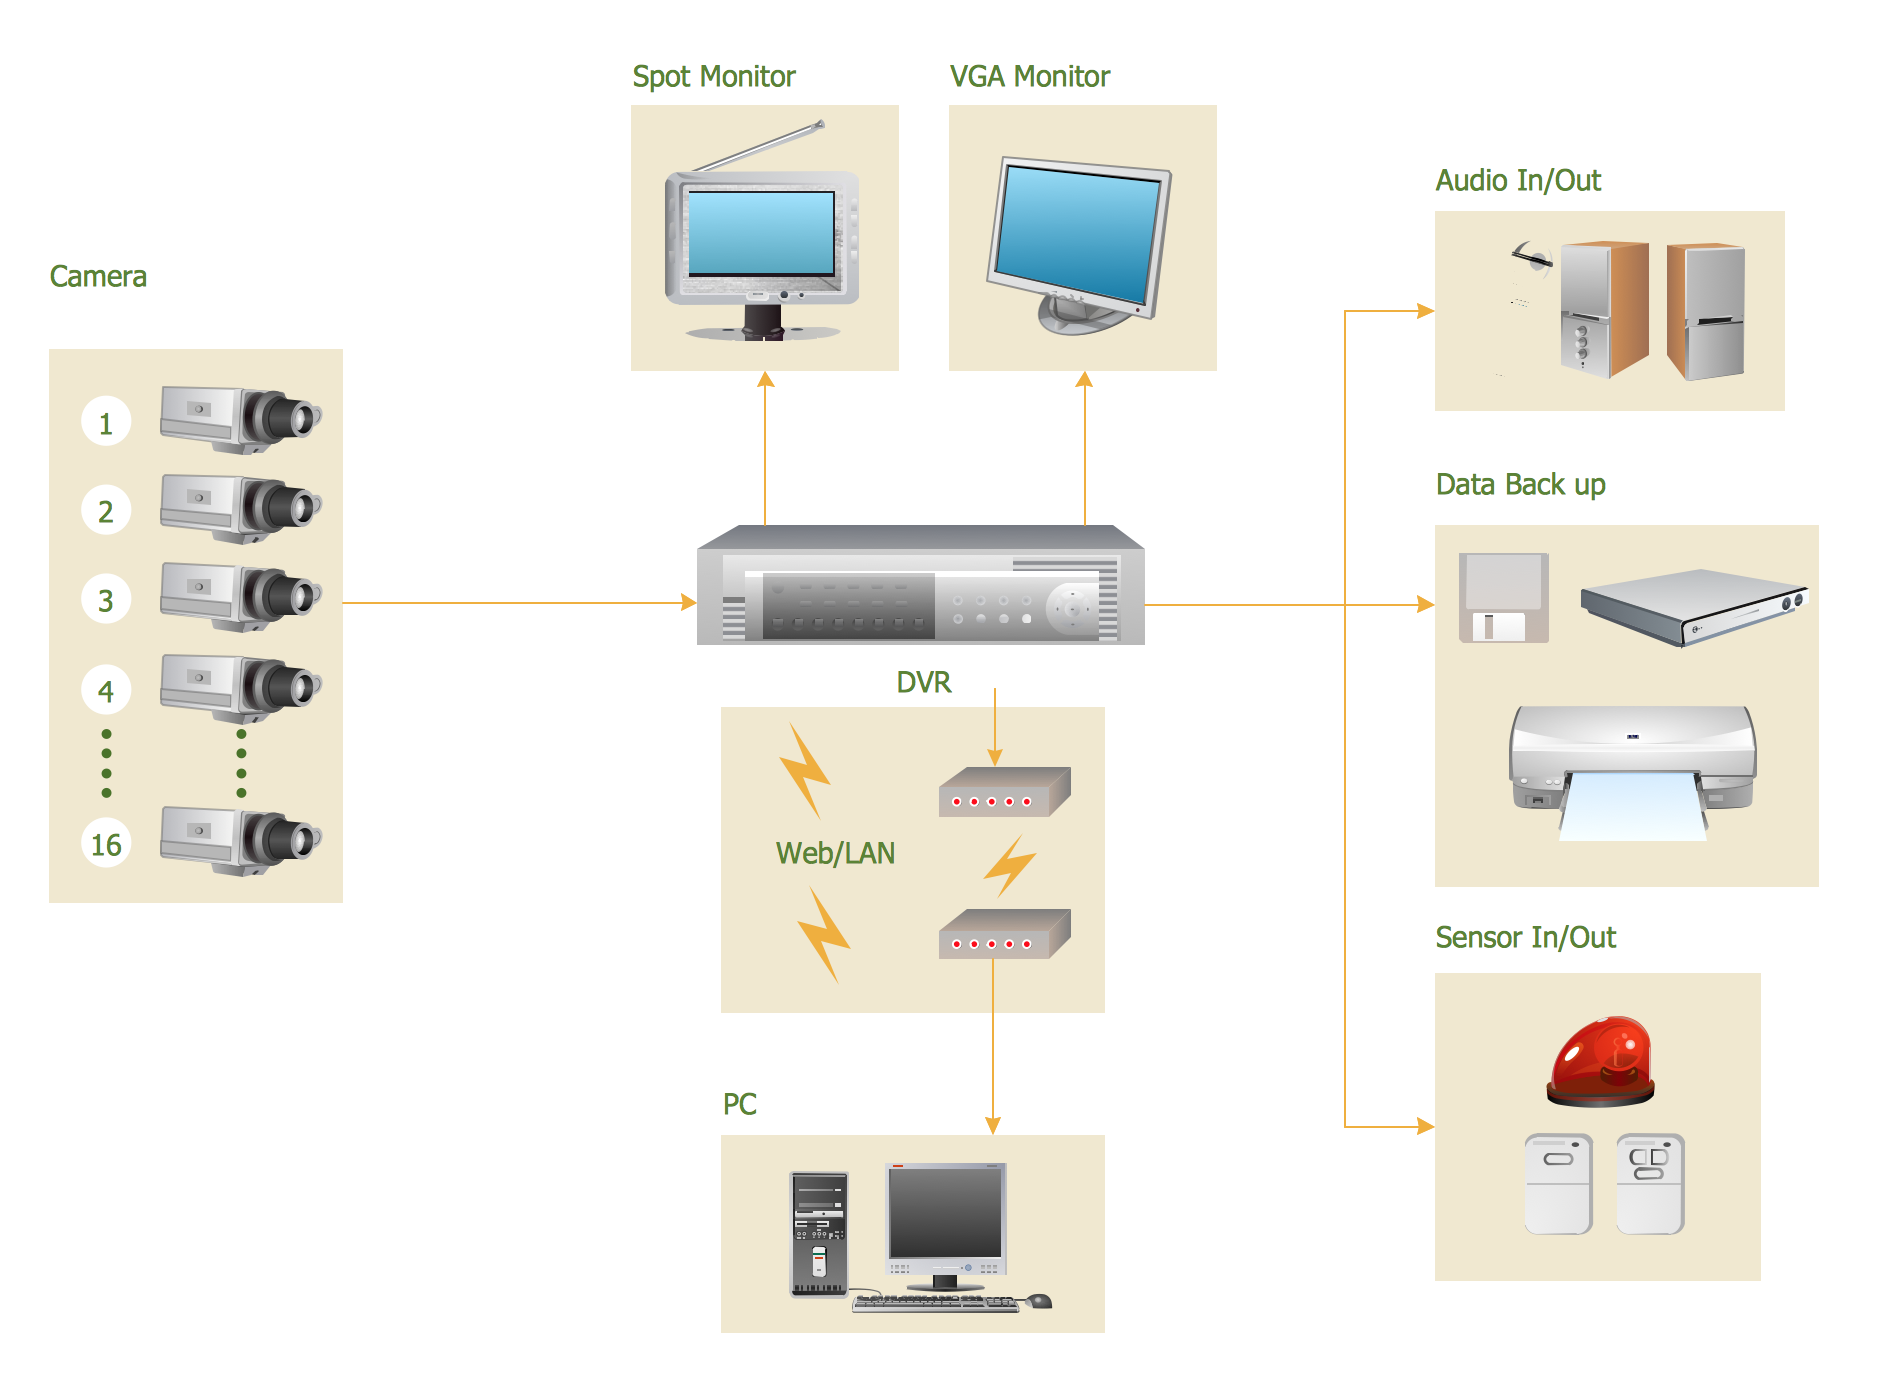 Basic cctv system diagram cctv network diagram example cctv cctv surveillance system diagram ccuart